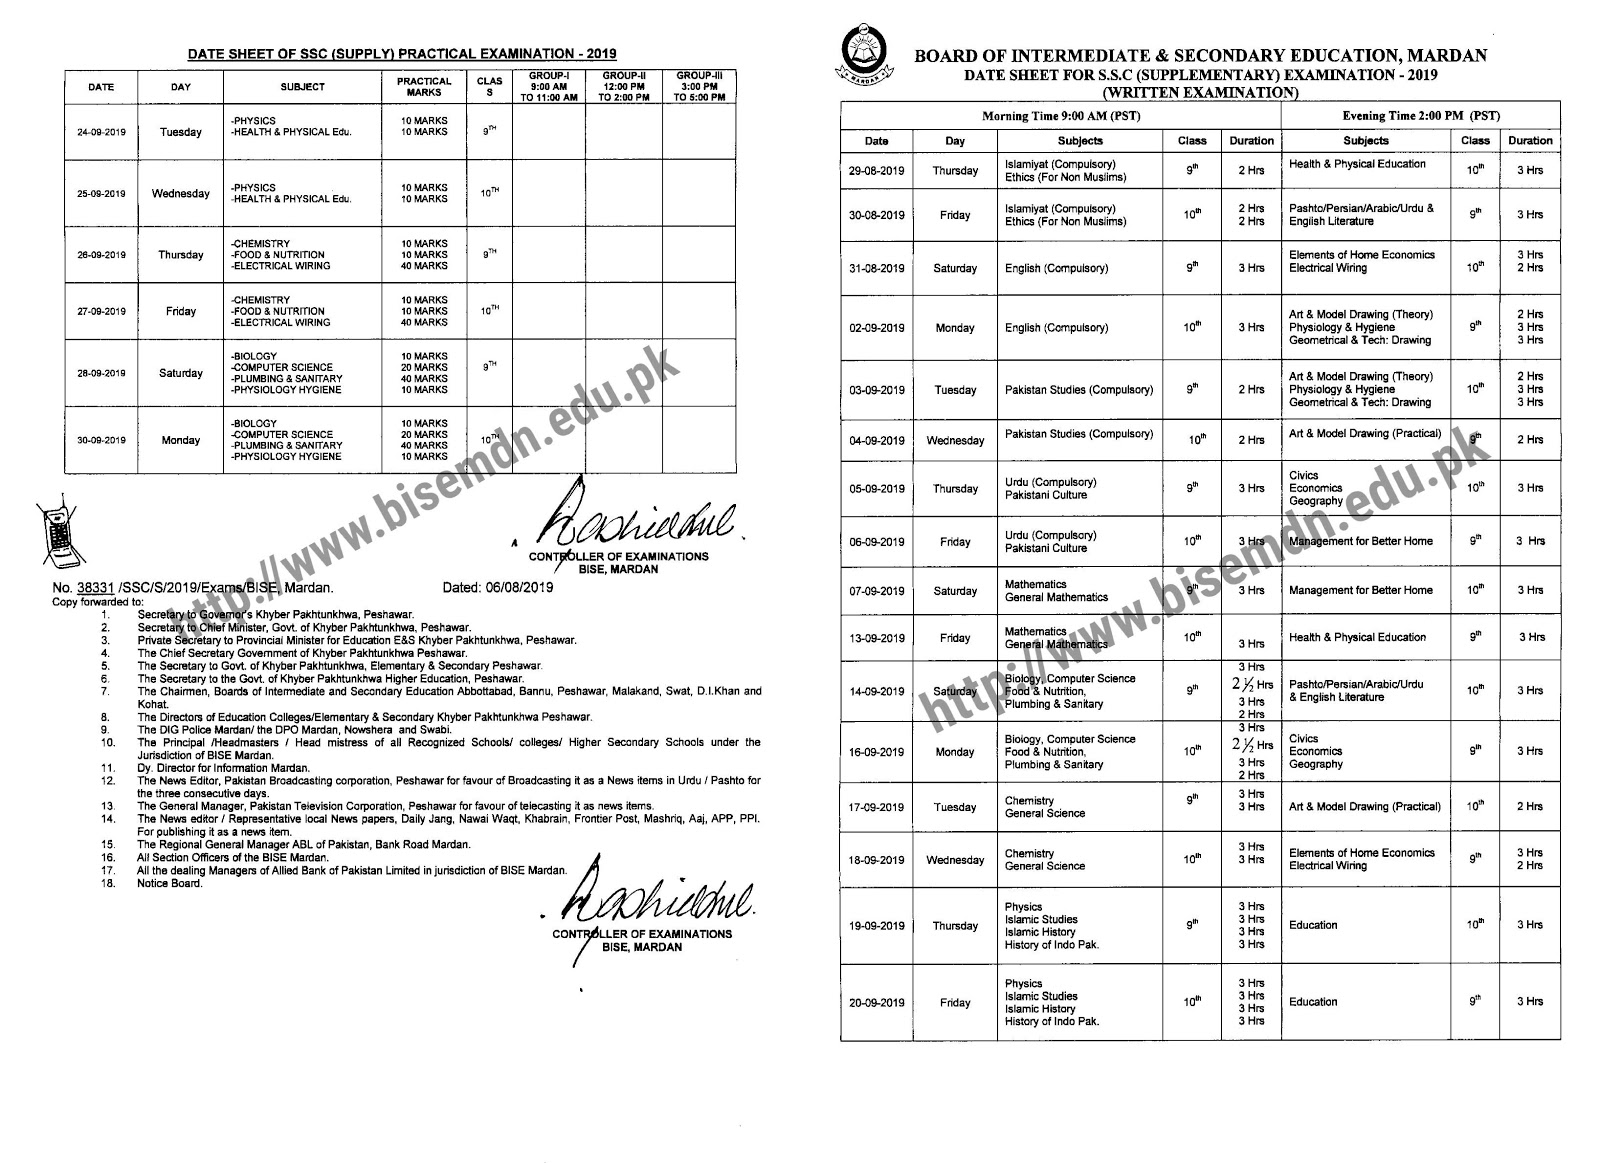 Date Sheet For SSC Supplementary Mardan Board 2019